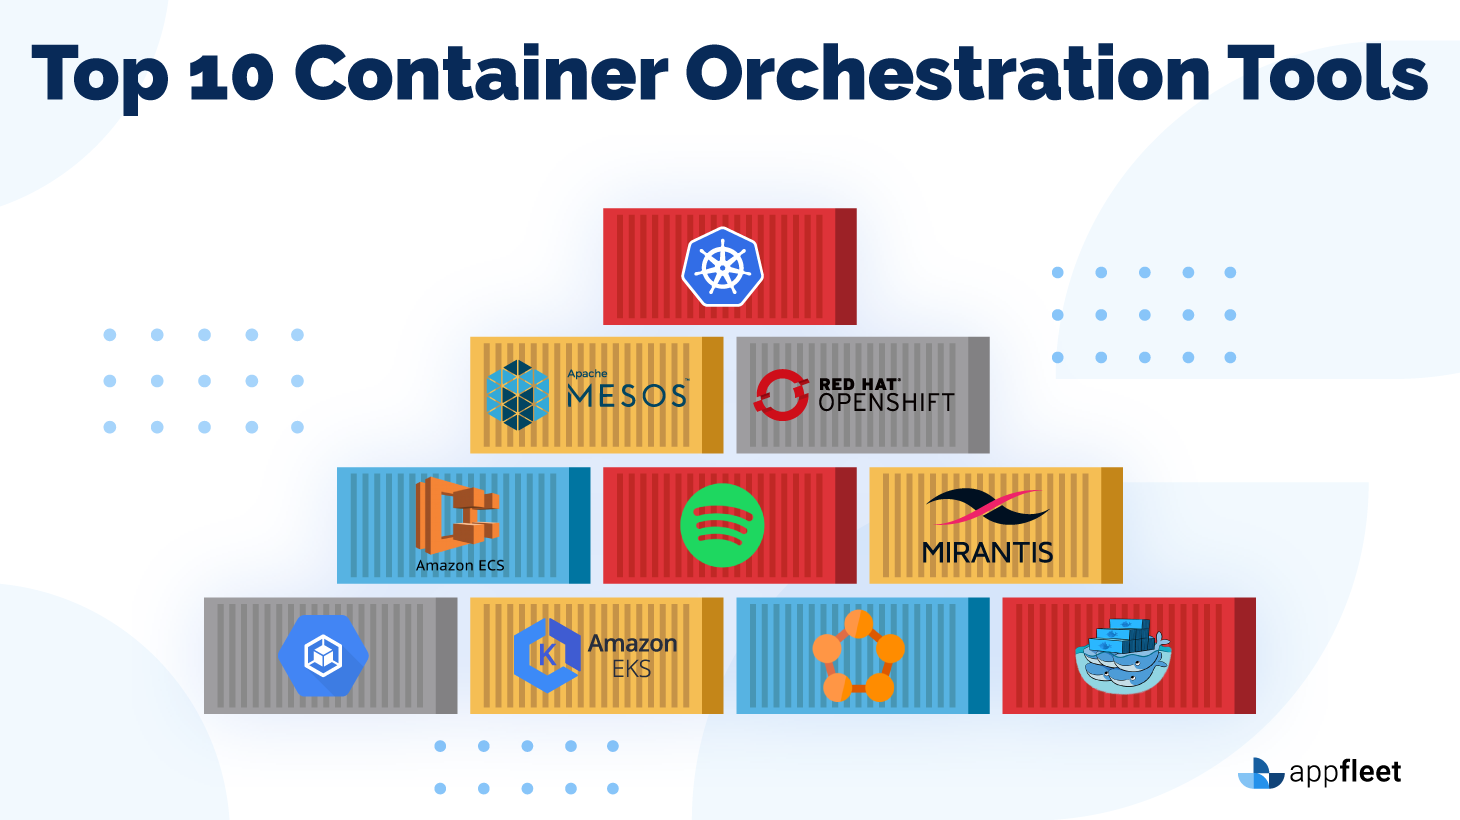 Top 10 Container Orchestration Tools